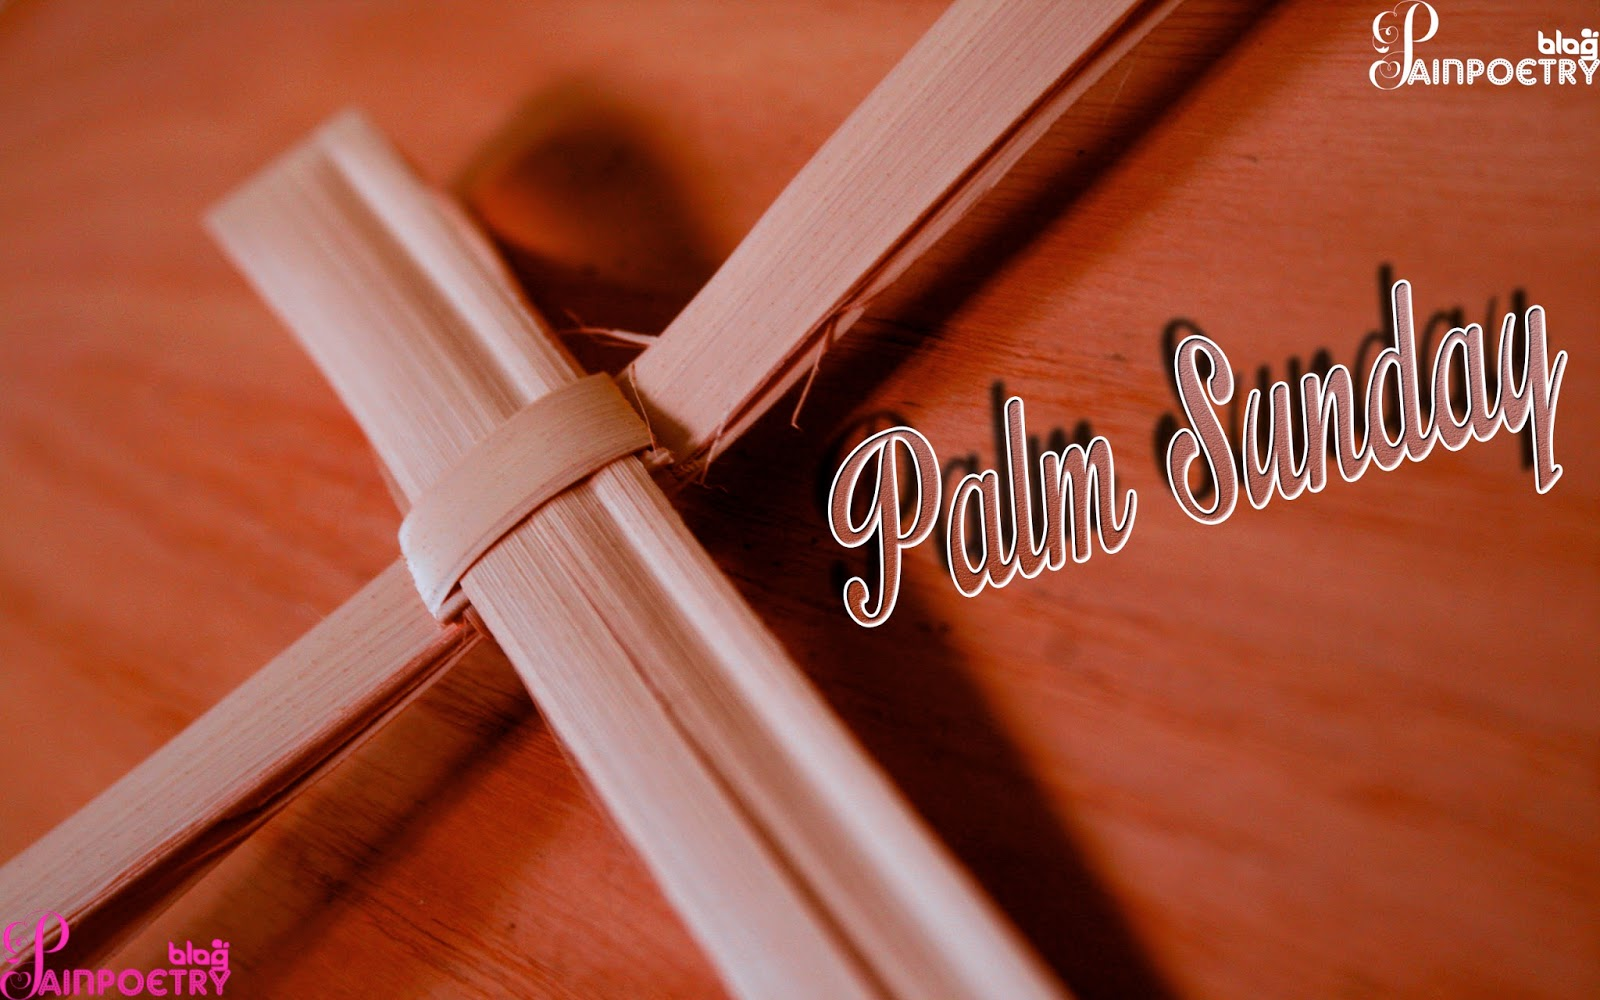 Palm-Sunday-Image-One-Cross-HD-Wide